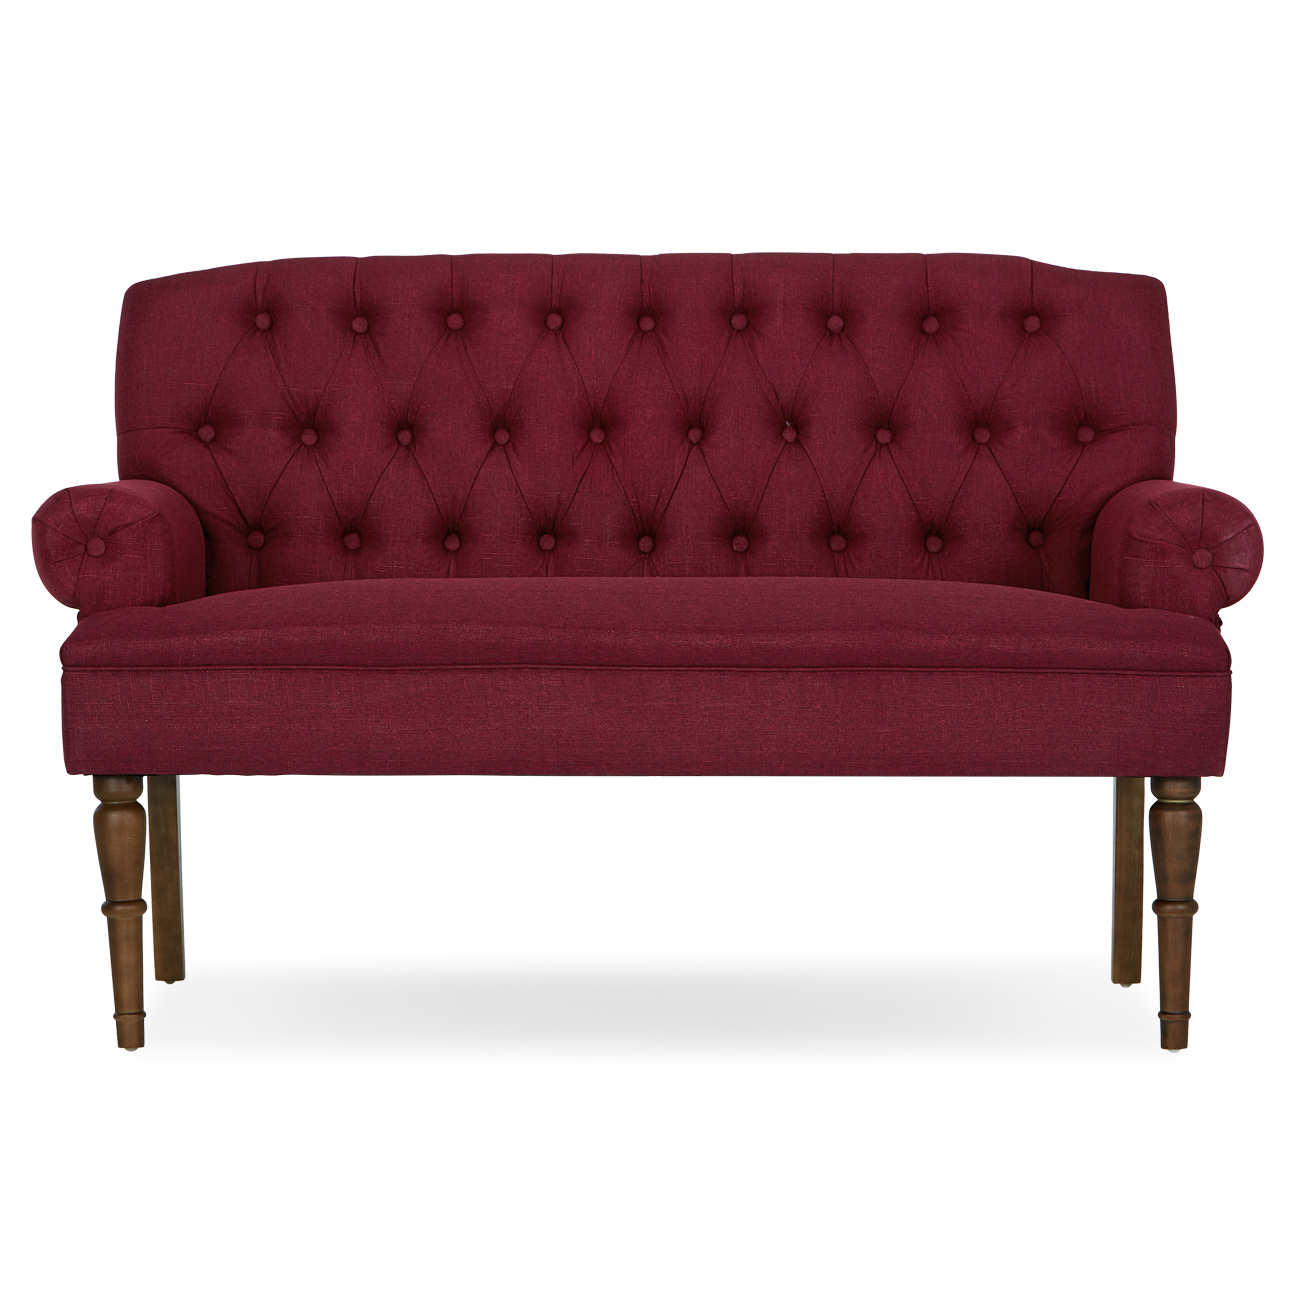 Button Tufted Settee Vintage Sofa Bench W Linen Fabric